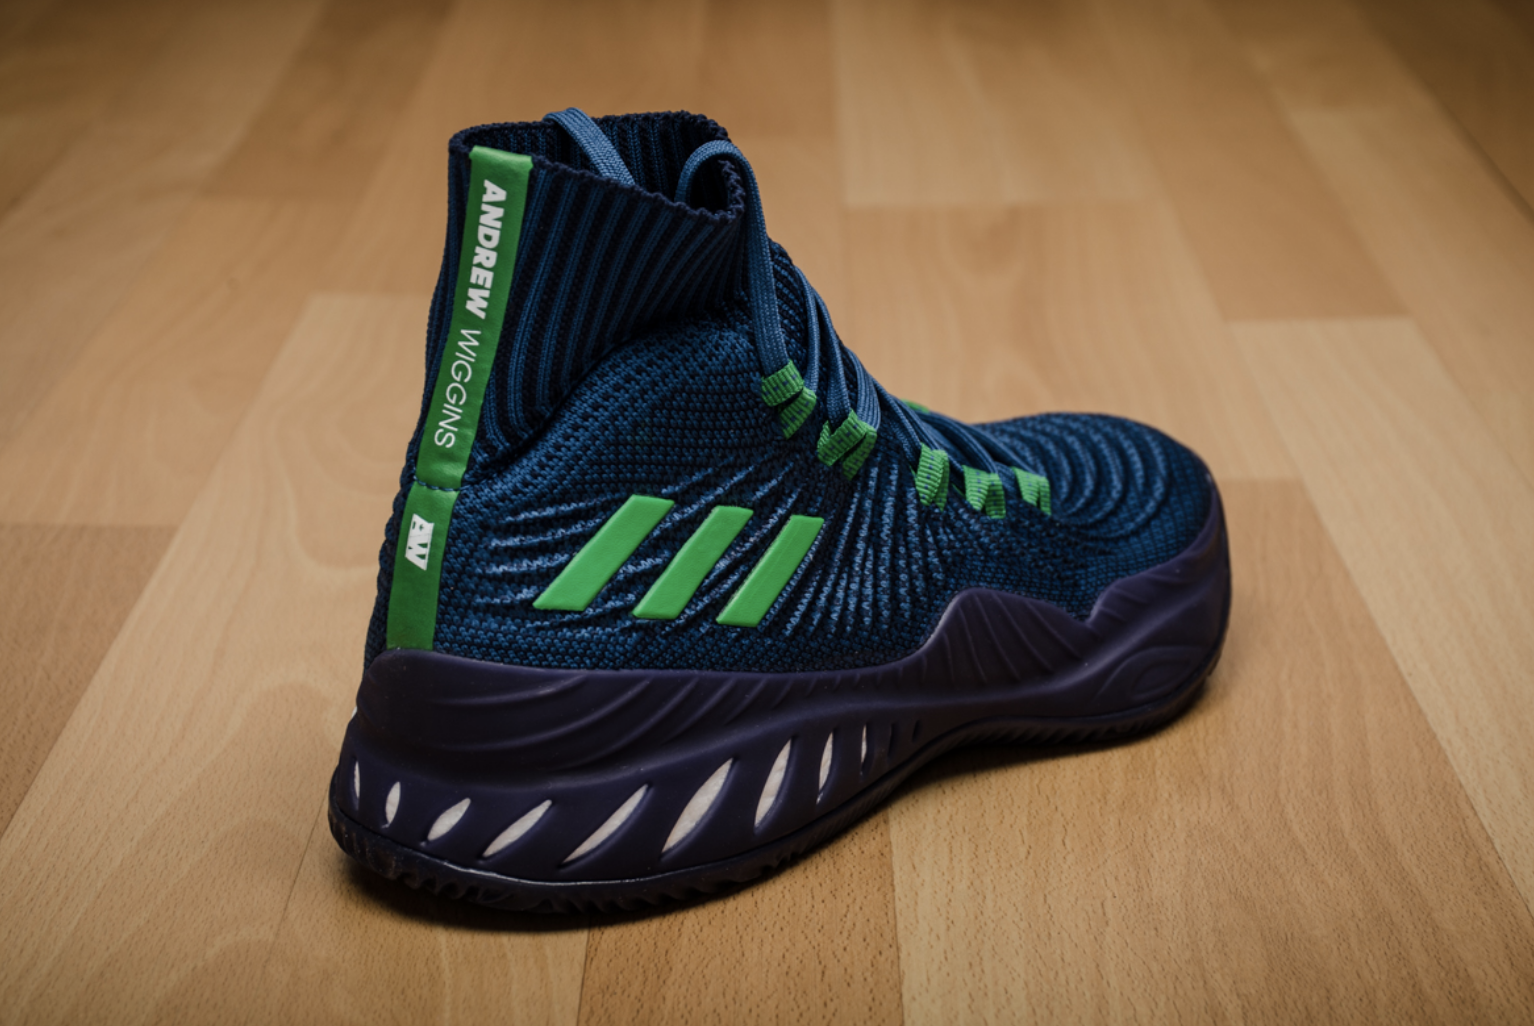 san francisco d1a00 49c65 ... NEW! adidas CRAZY EXPLOSIVE PRIMEKNIT Andrew Wiggins Navy Blue Shoes  BY4468 PE ...